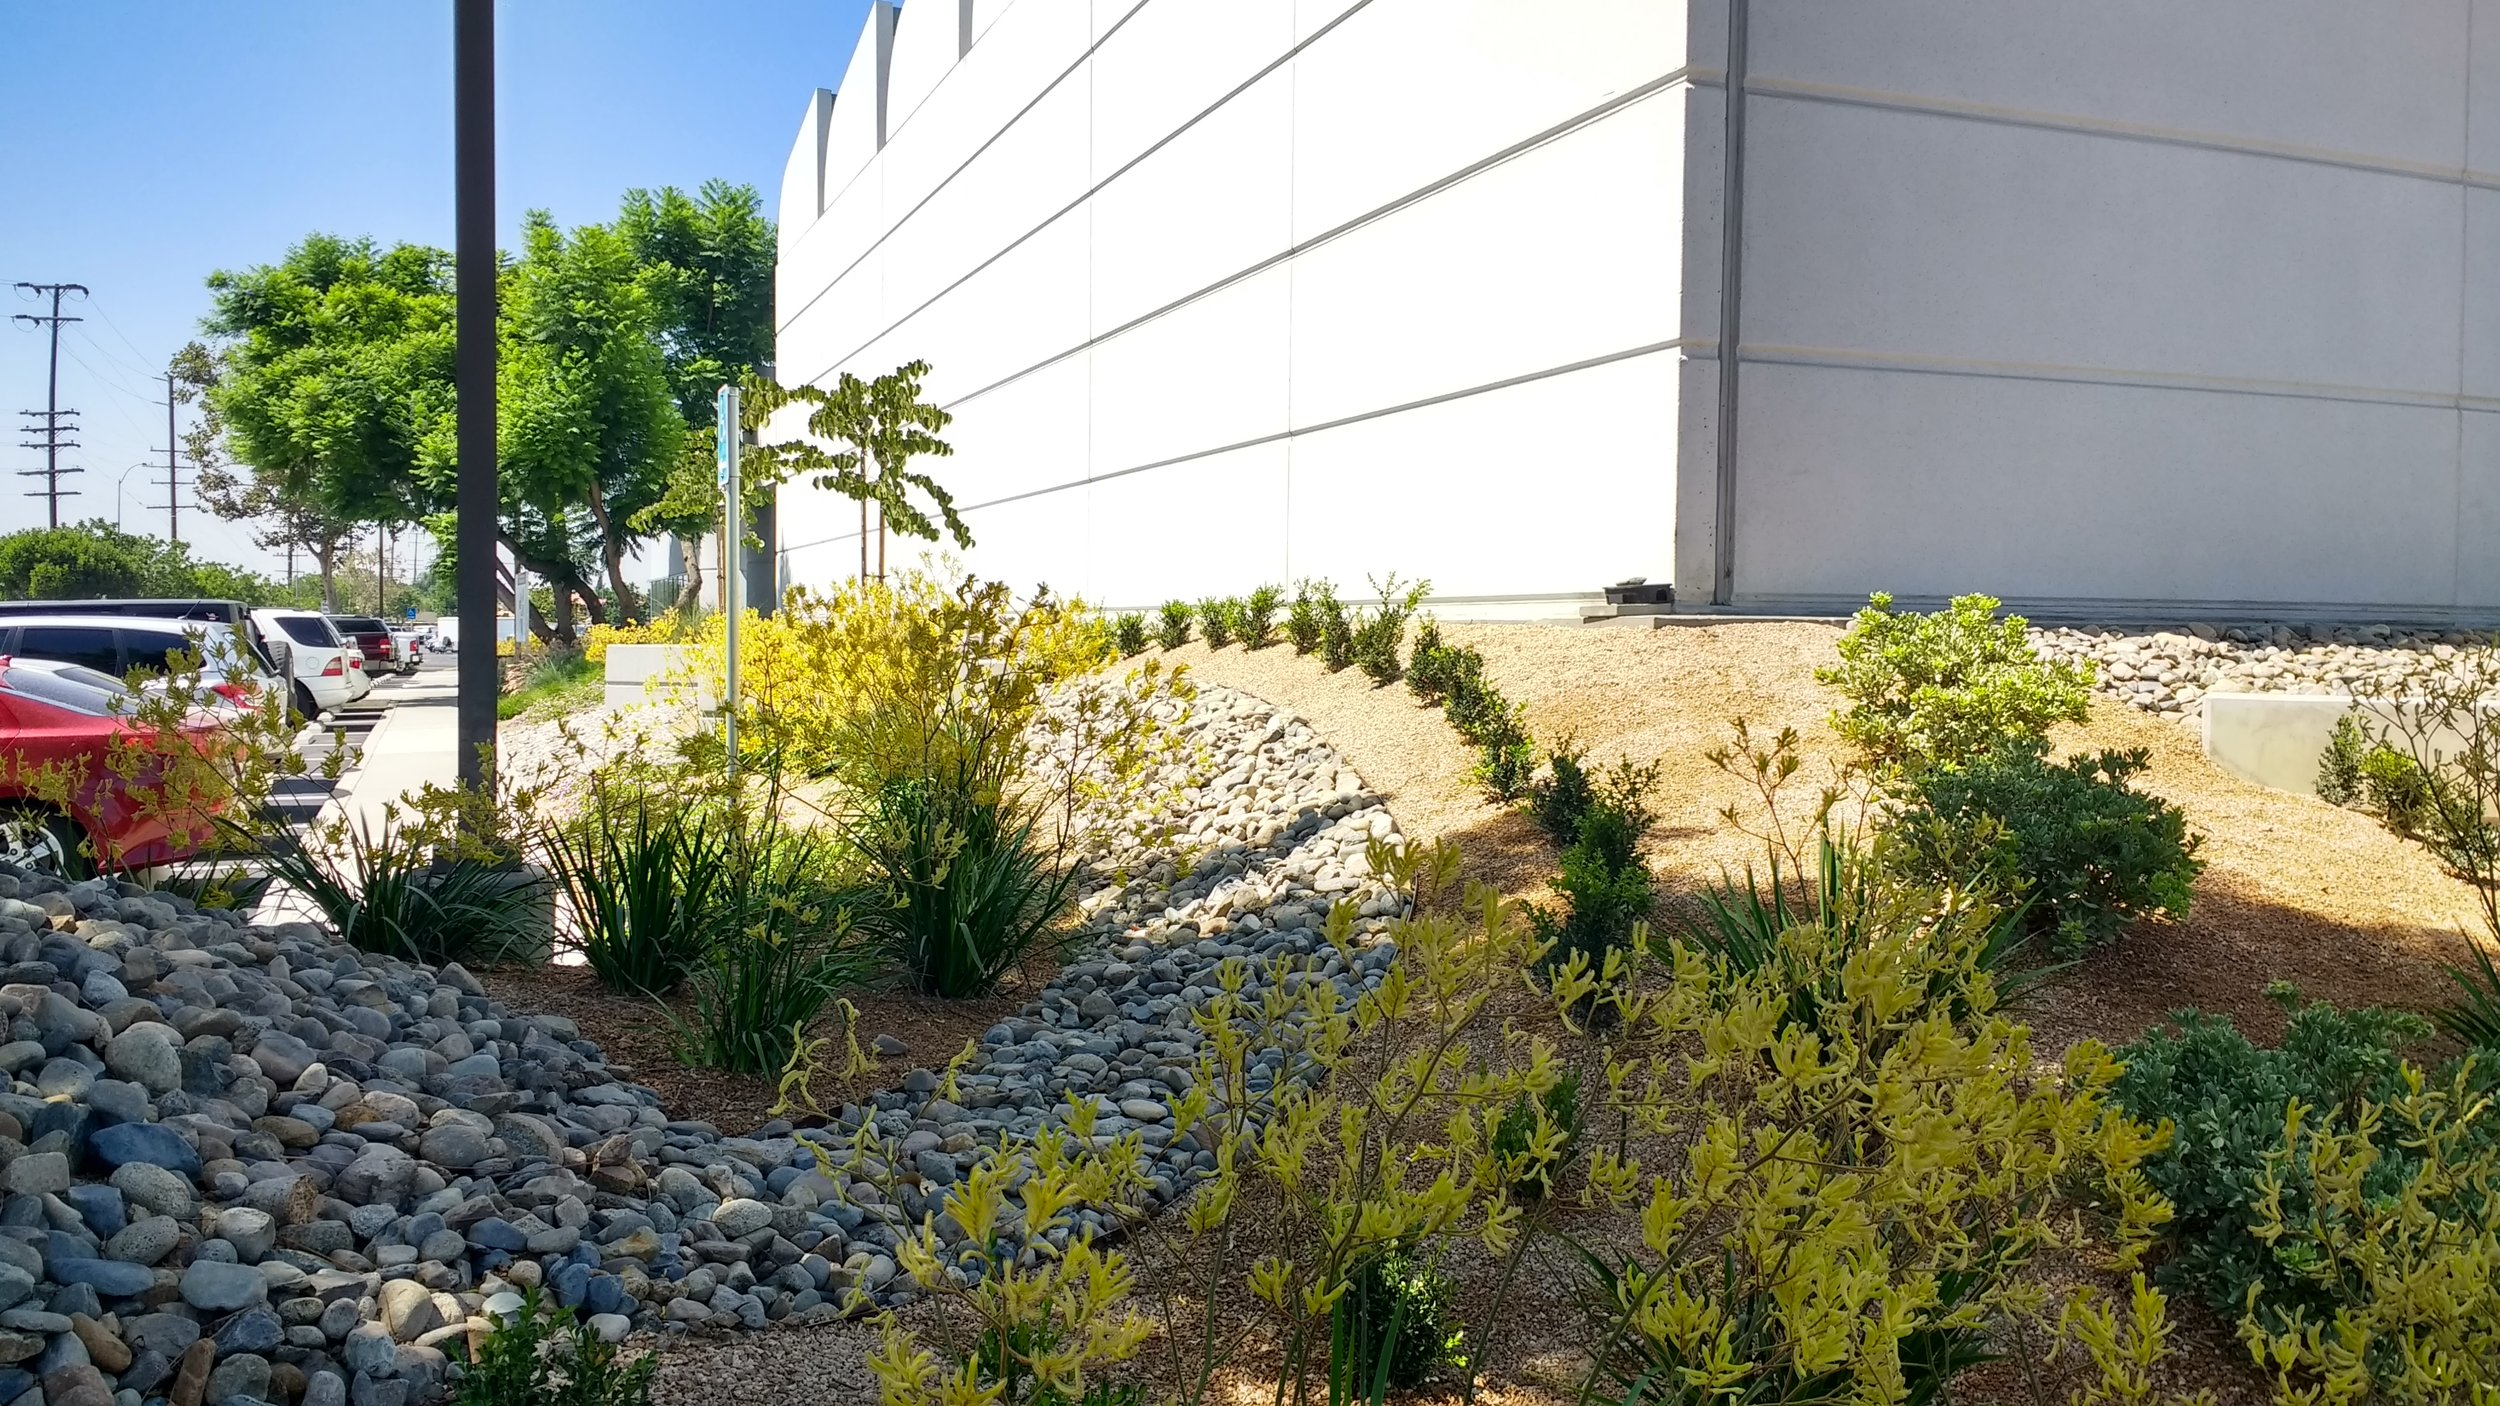 A fabric of landscape materials designed to integrate with the modern basket weave of the new parking structure. The landscape design is a complex system of layers and patterns representing the city and its complexity.